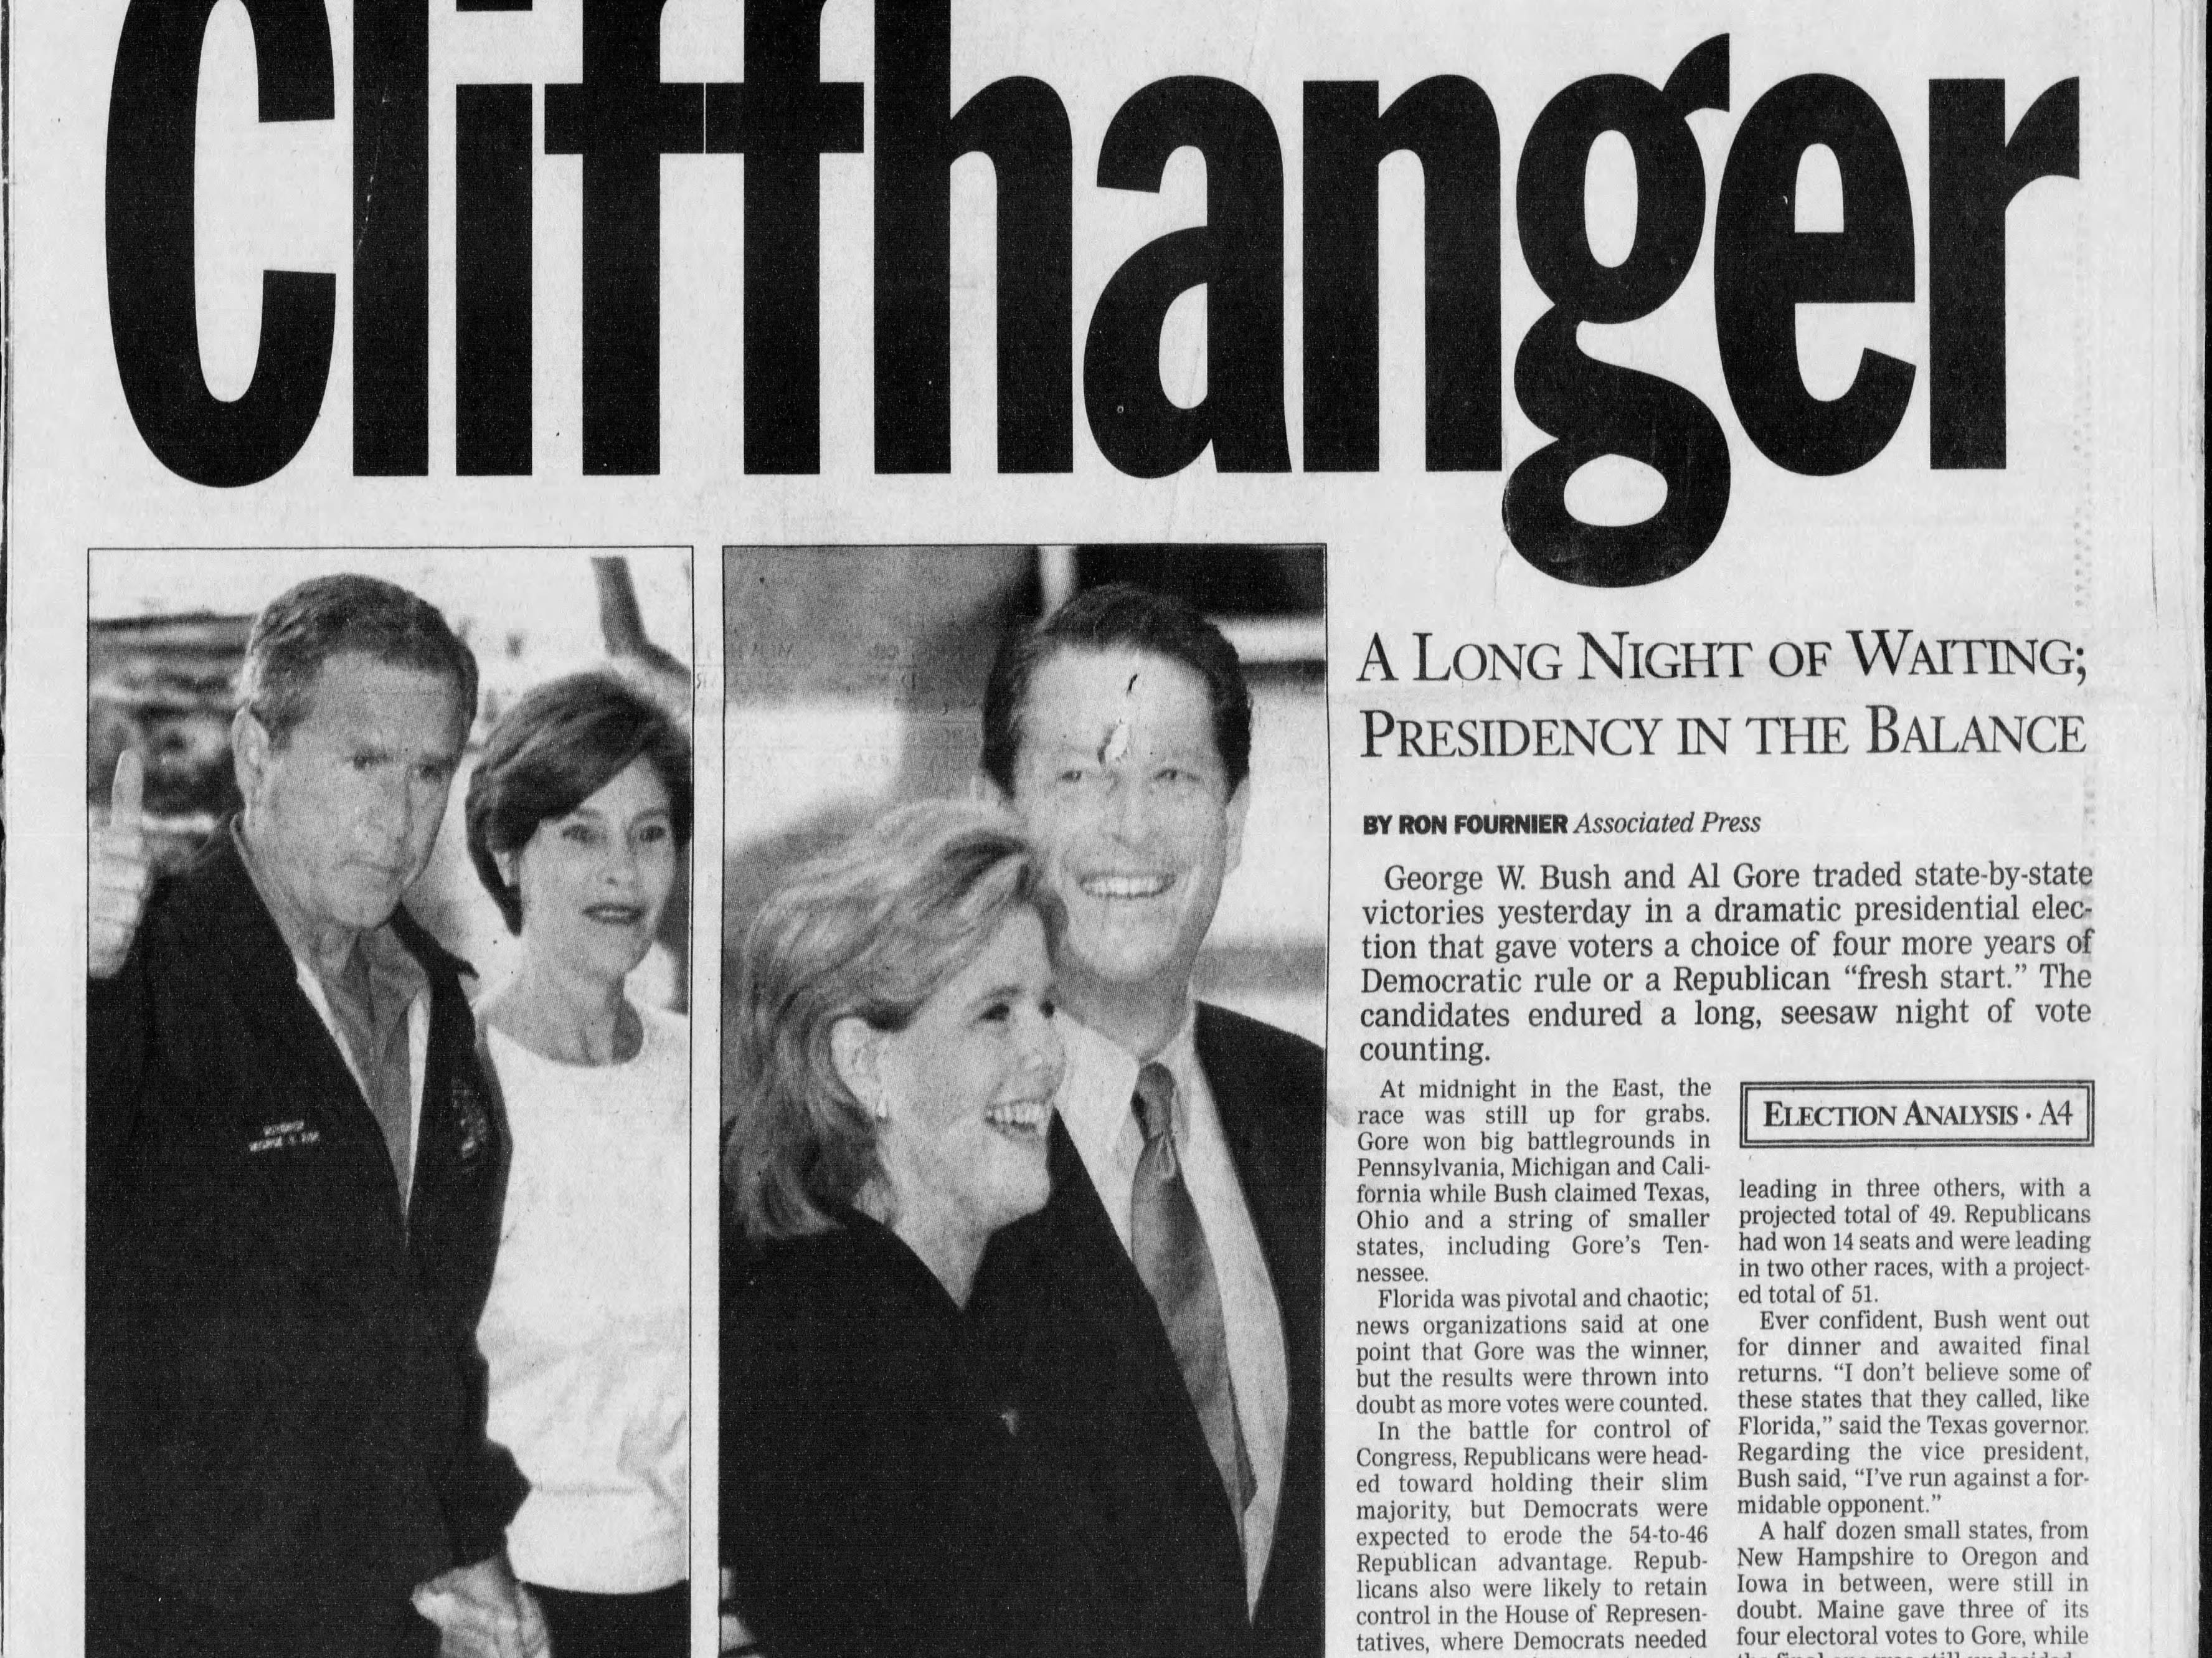 Who won? The nation plunges into electoral chaos after Election Day produces no winner in the presidential contest between Vice President Al Gore and Texas Gov. George W. Bush in this edition from Wednesday, Nov. 8, 2000.